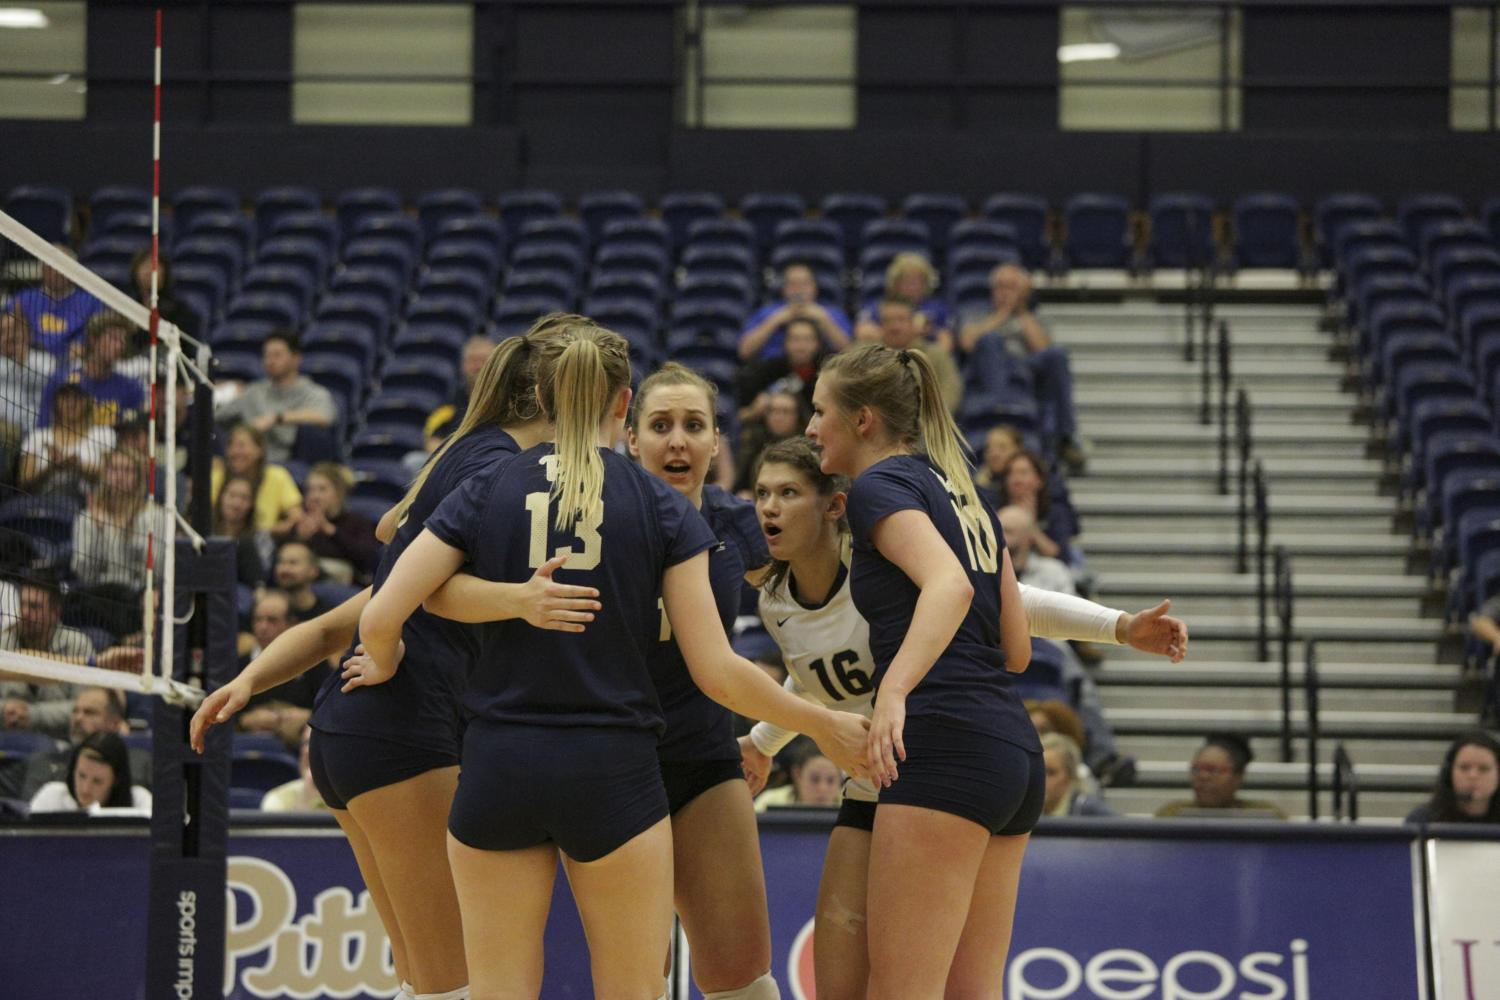 Pitt volleyball secured a slot in the 2017 NCAA tournament after clinching the ACC Championship title this weekend. (Photo by Thomas Yang | Senior Staff Photographer)